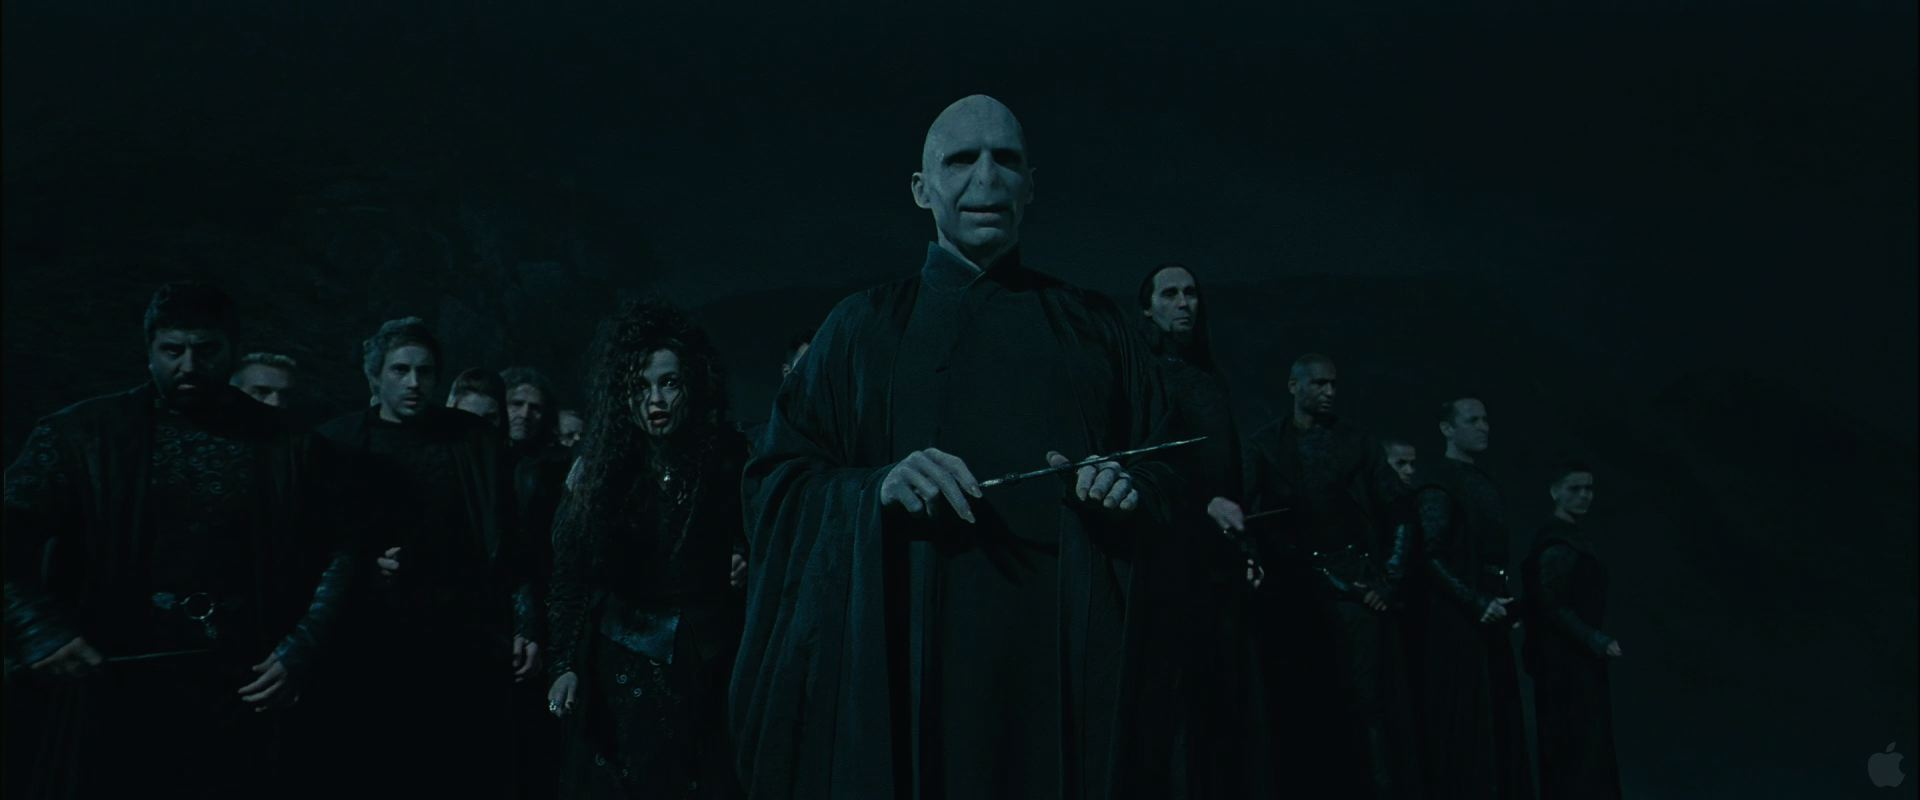 lord voldemort and followers from harry potter and the deathly